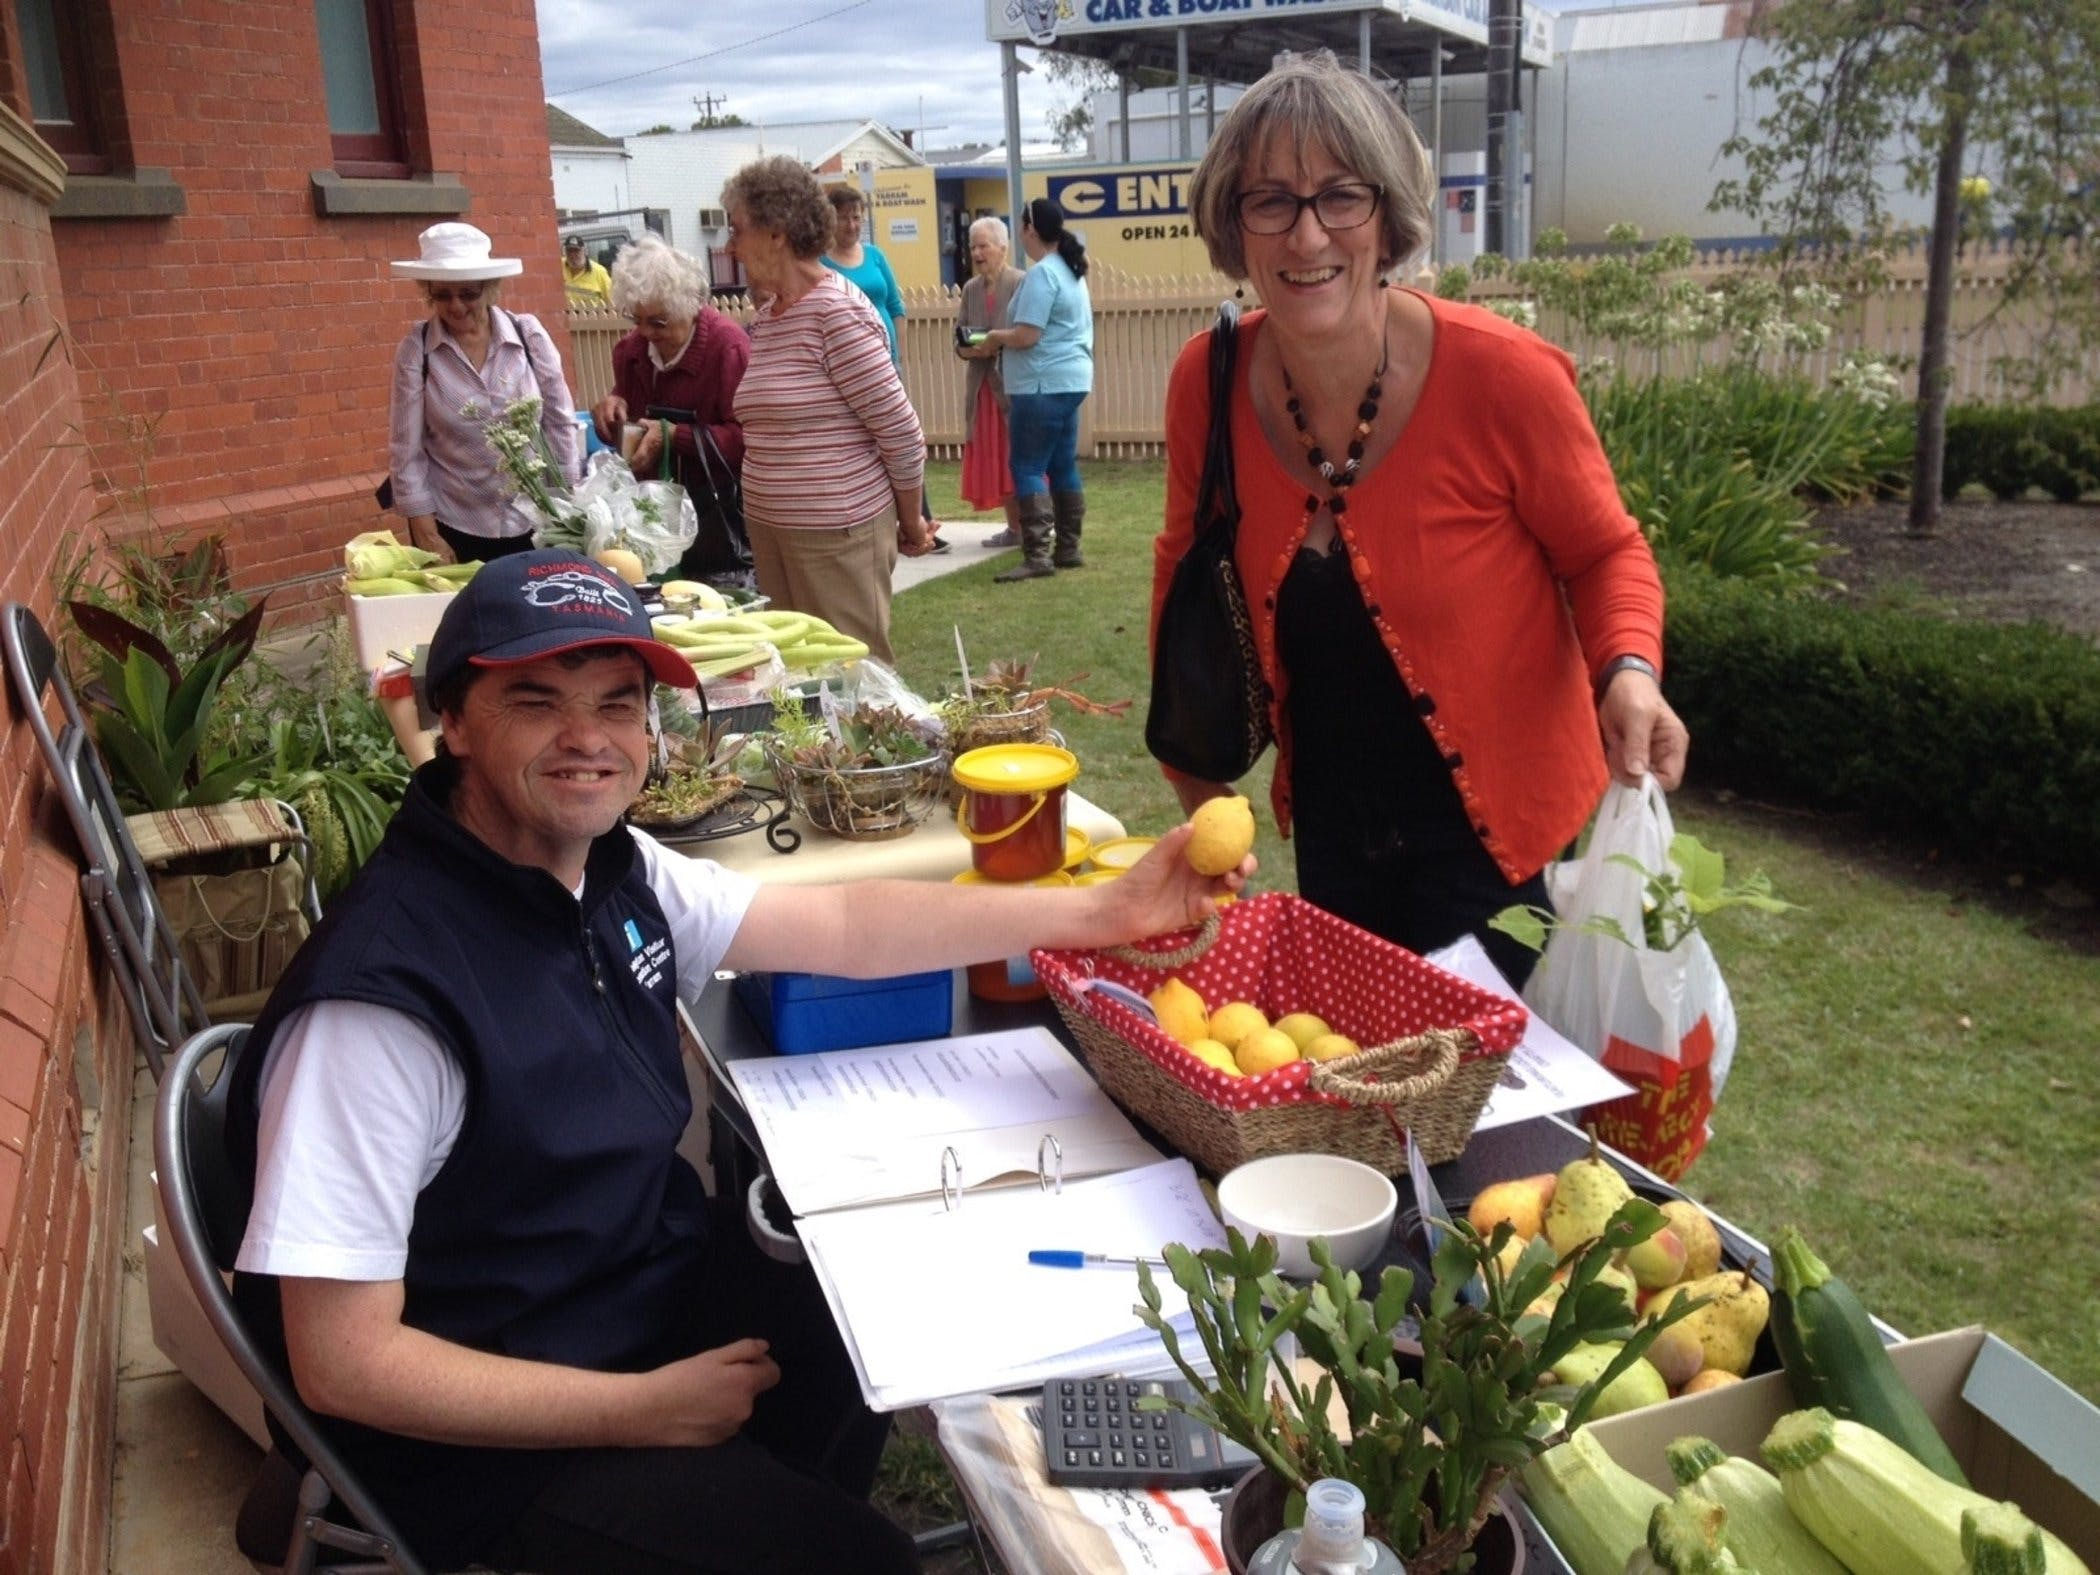 Yarram Courthouse Garden Produce Market - ACT Tourism